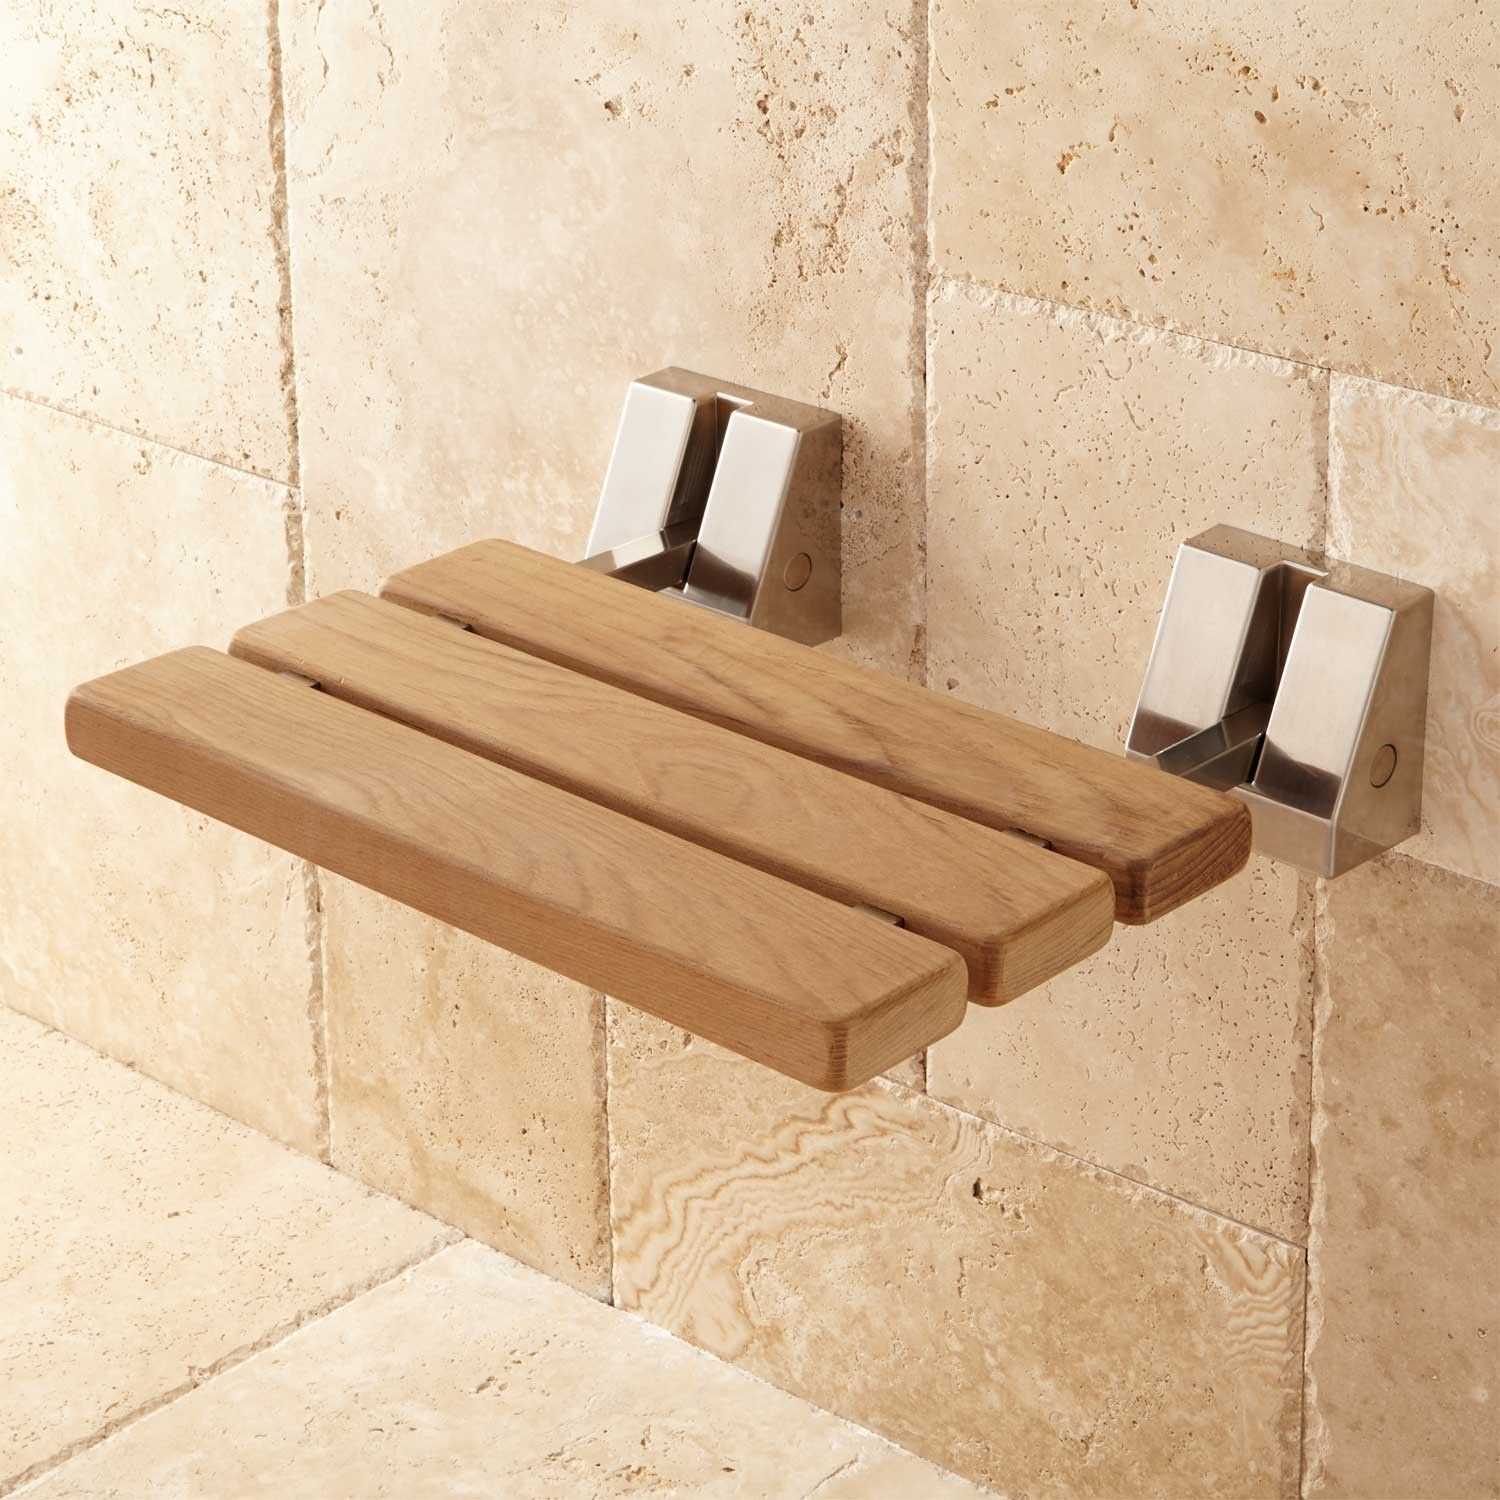 Wall Mount Teak Folding Shower Seat Shower Seat Teak